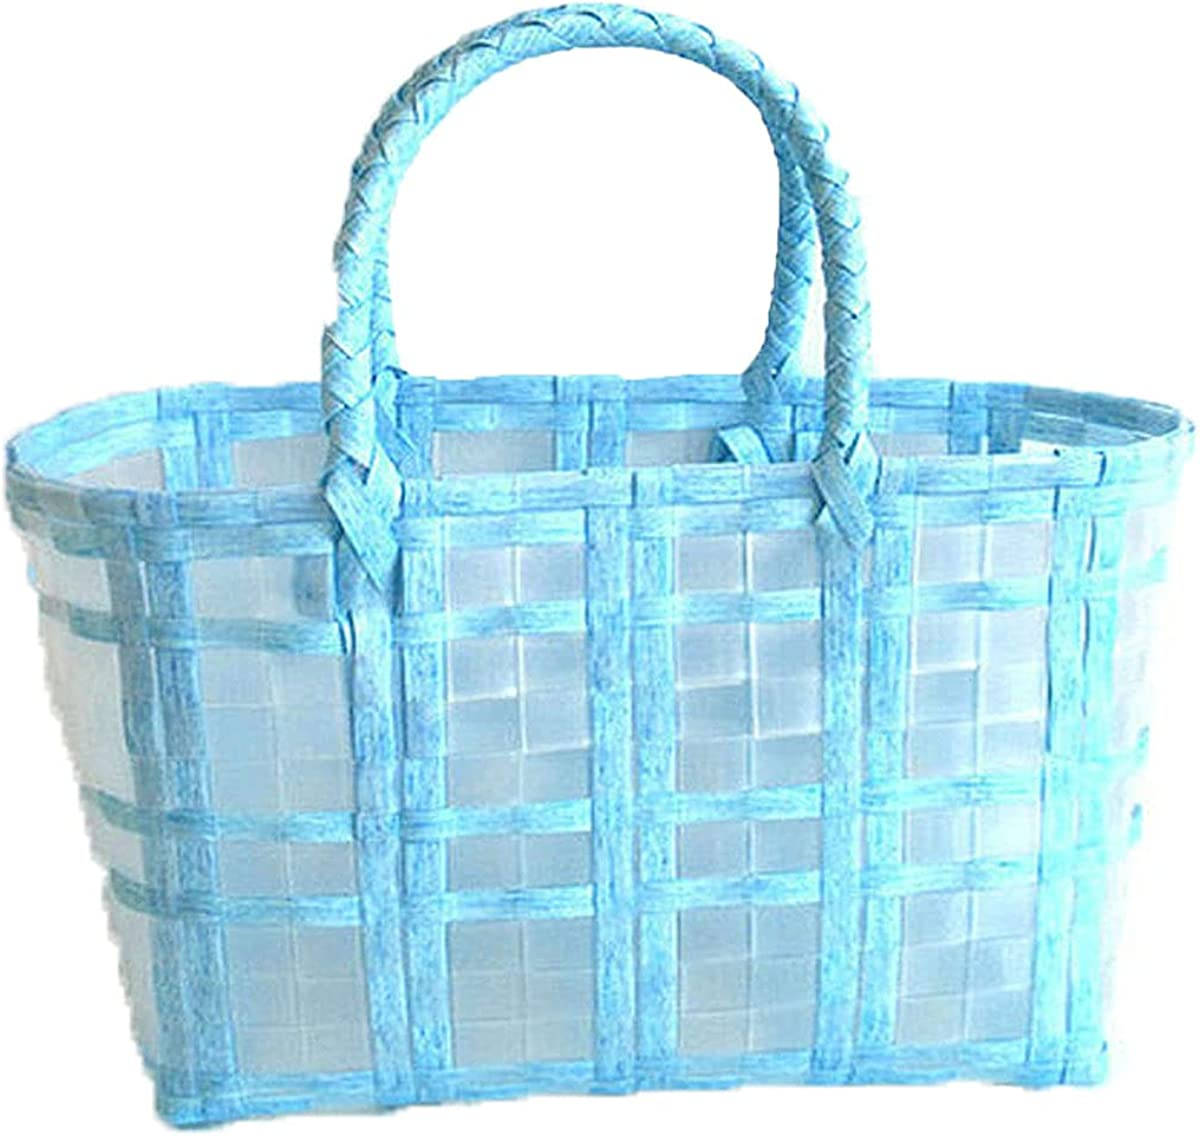 Beach Bag Totes Bags for Women Challenge Max 52% OFF the lowest price 4 Mesh color Lar